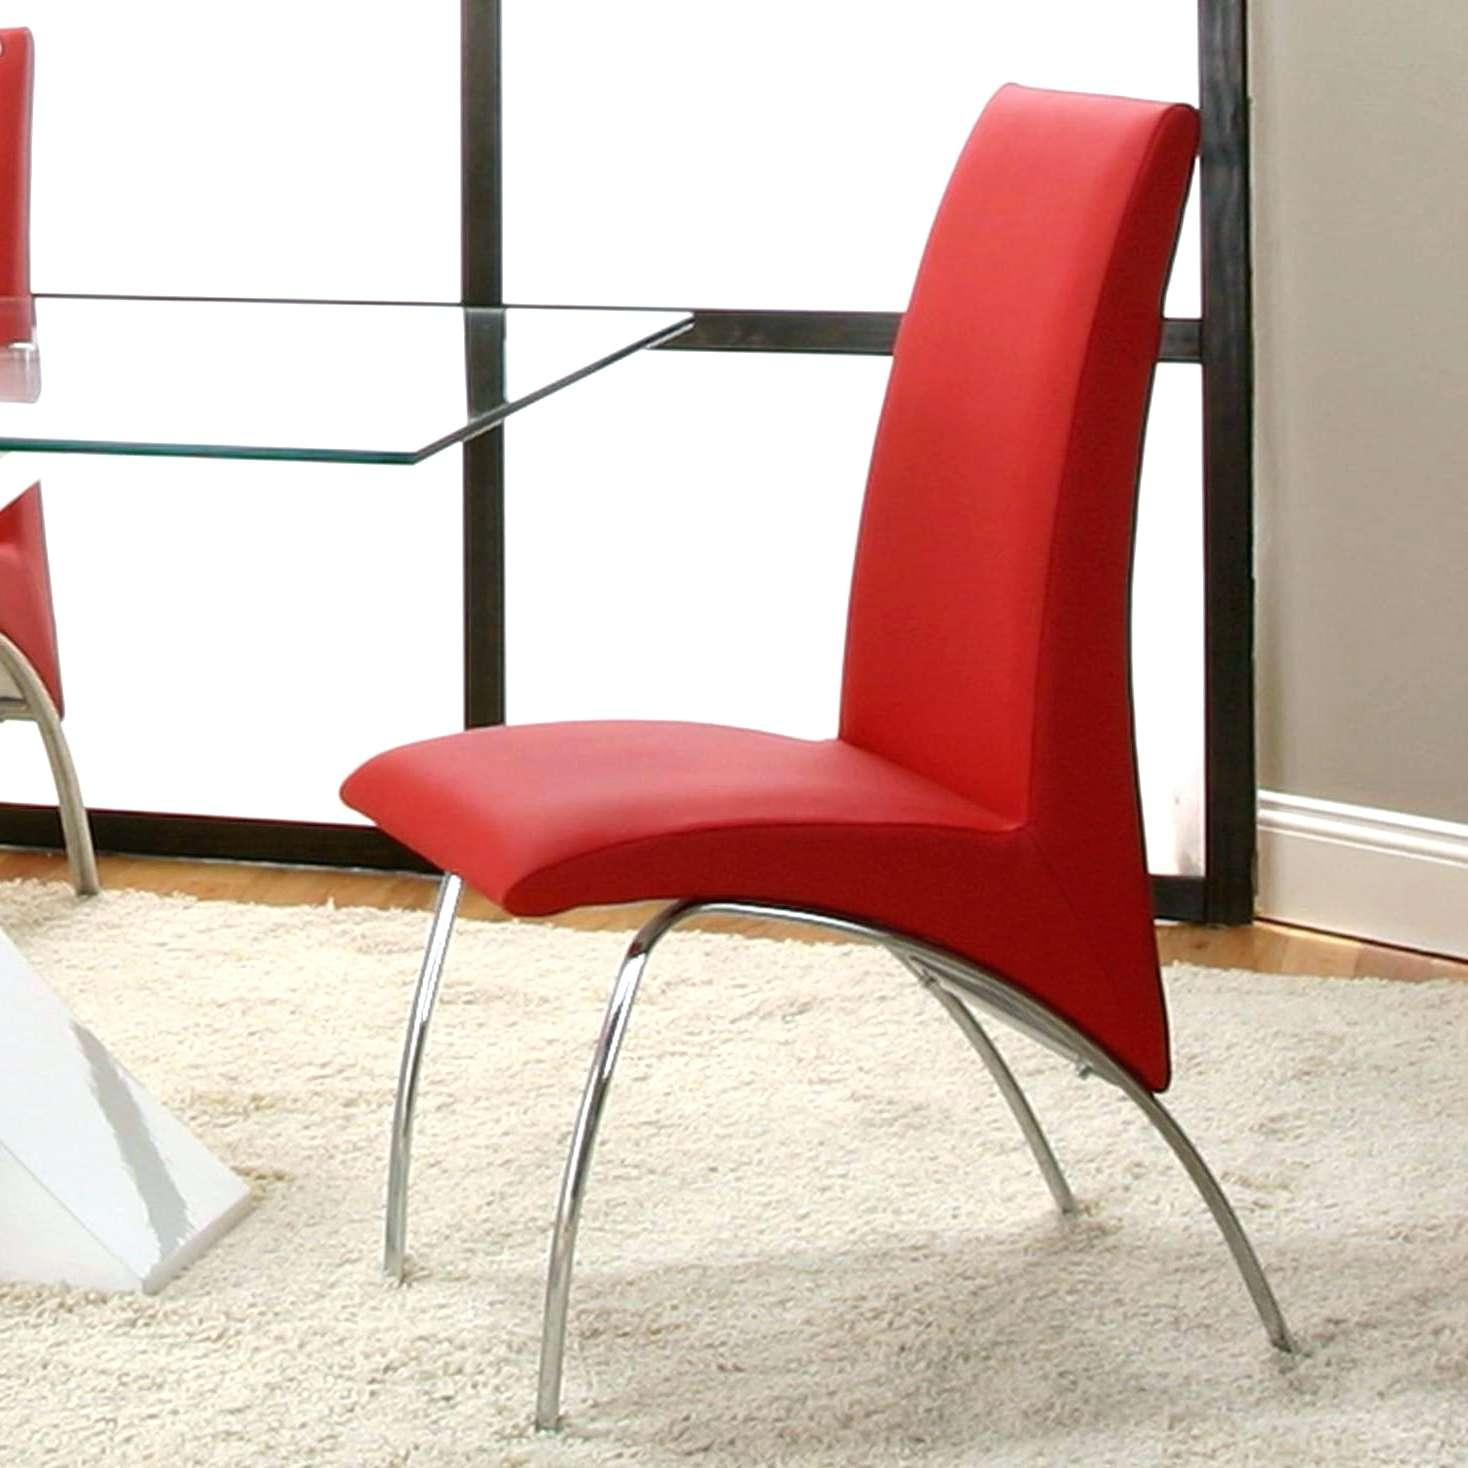 2017 Red Gloss Coffee Tables Intended For Ikea Red Gloss Side Table Ikea Red Gloss Coffee Table Red Side (View 1 of 20)